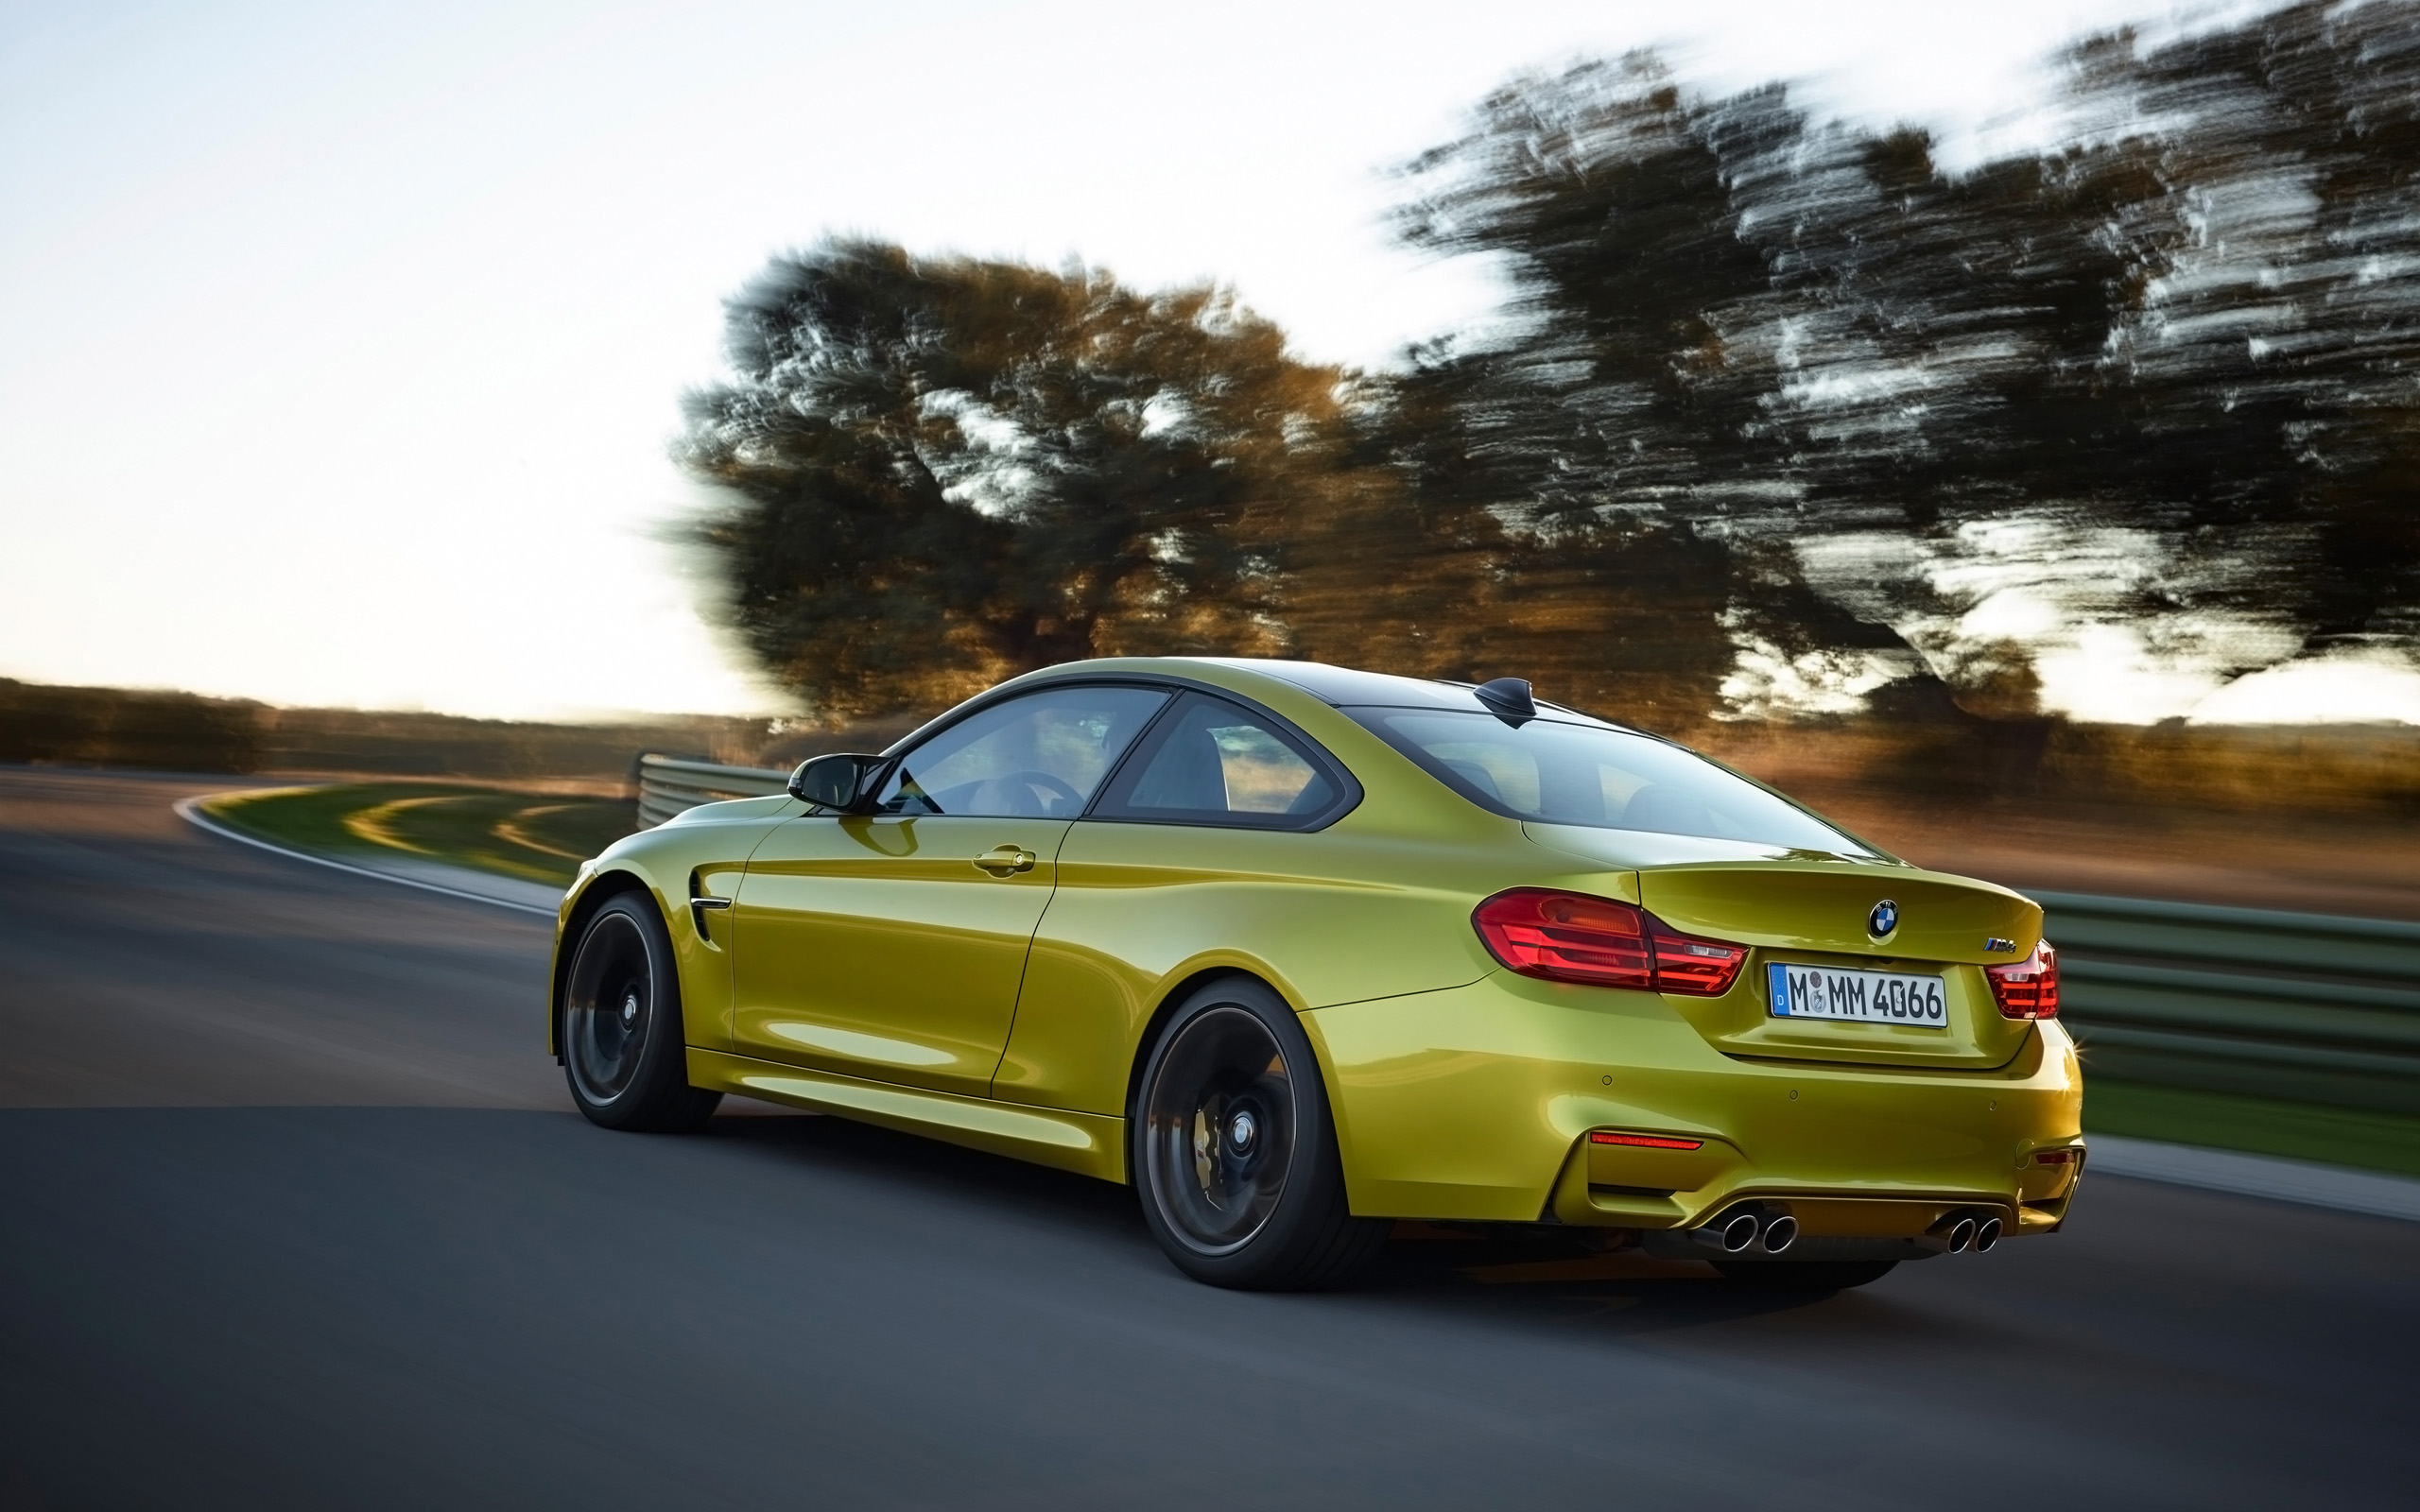 2014 Bmw M4 Coupe Motion Side Angle Wallpapers 2014 Bmw